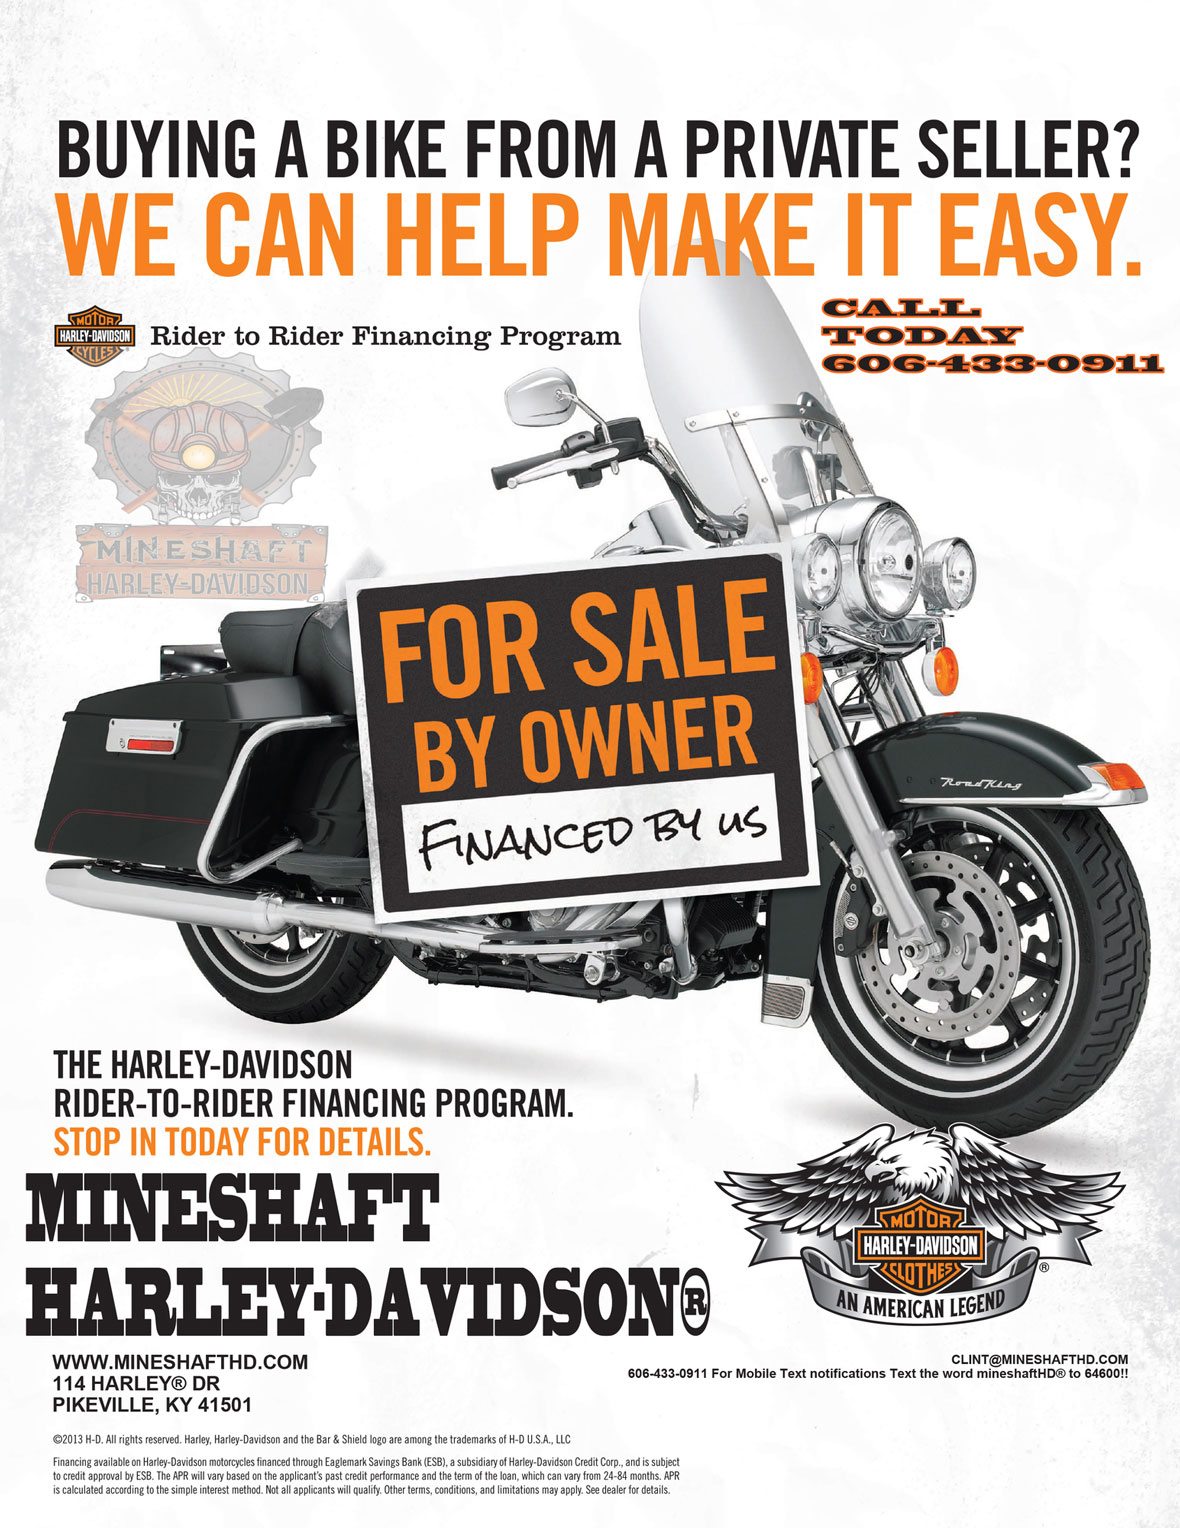 Financing at MineShaft H-D